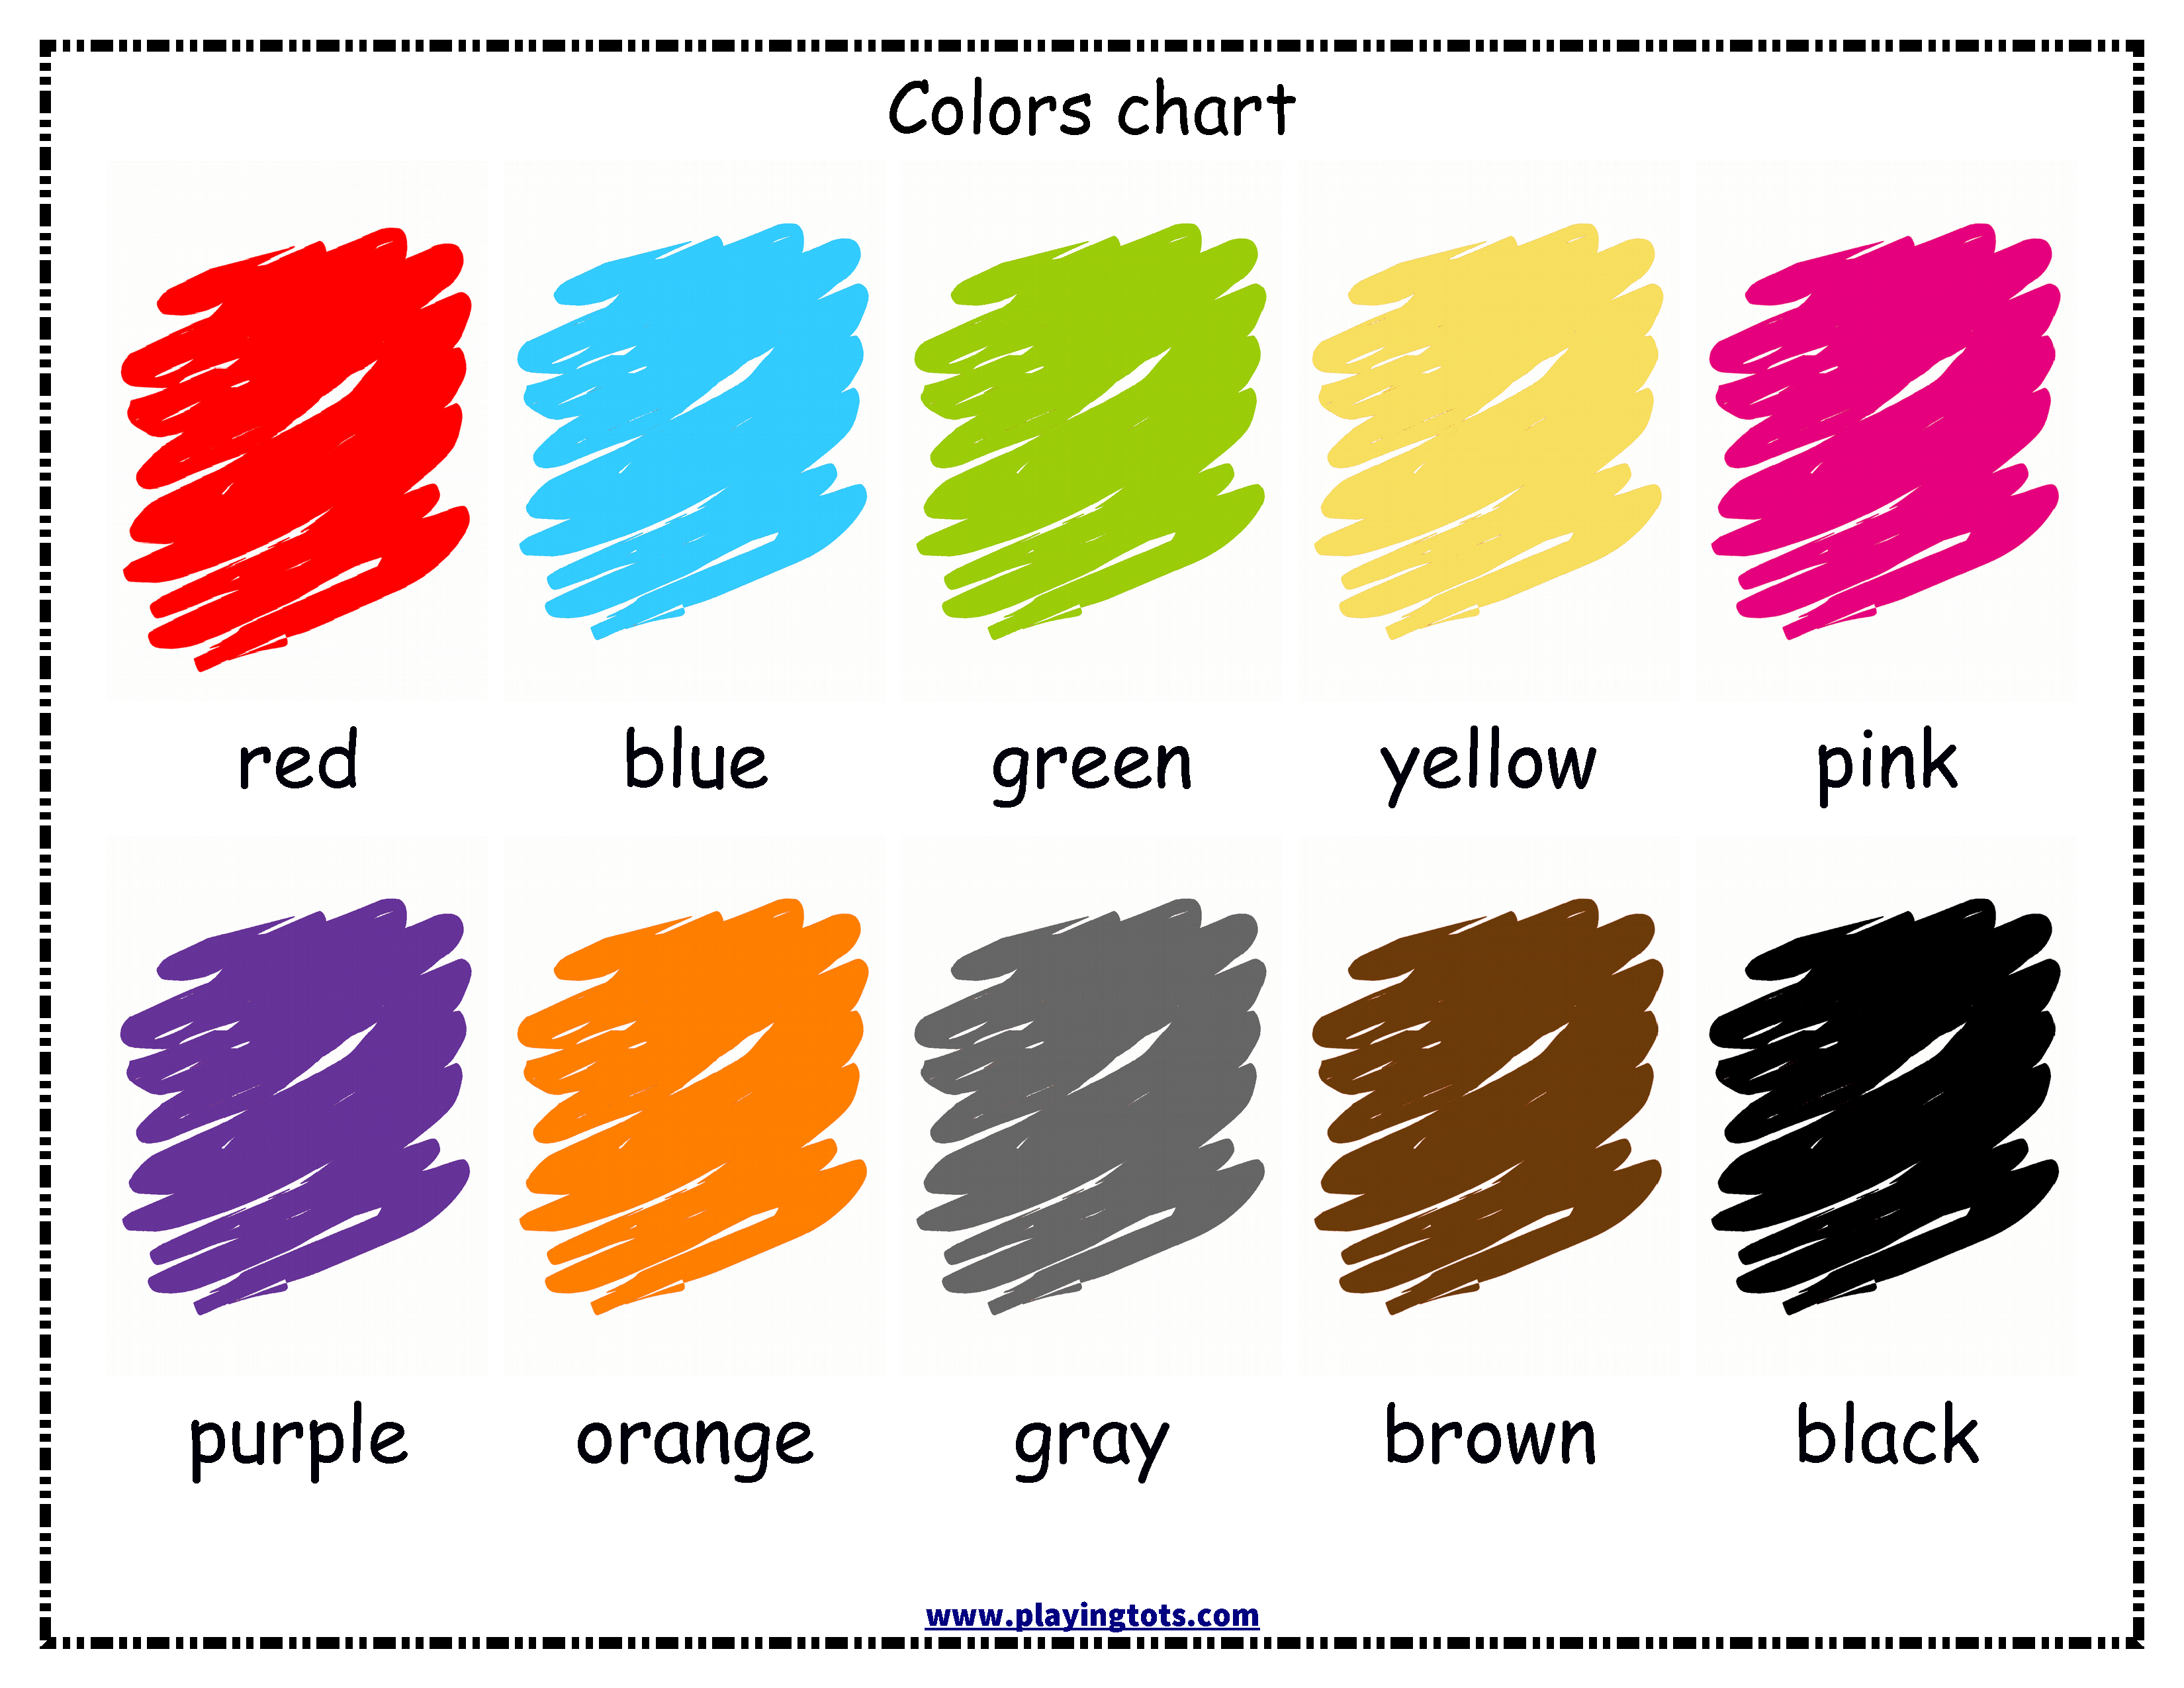 free printable colors chart for your toddler keywords ...